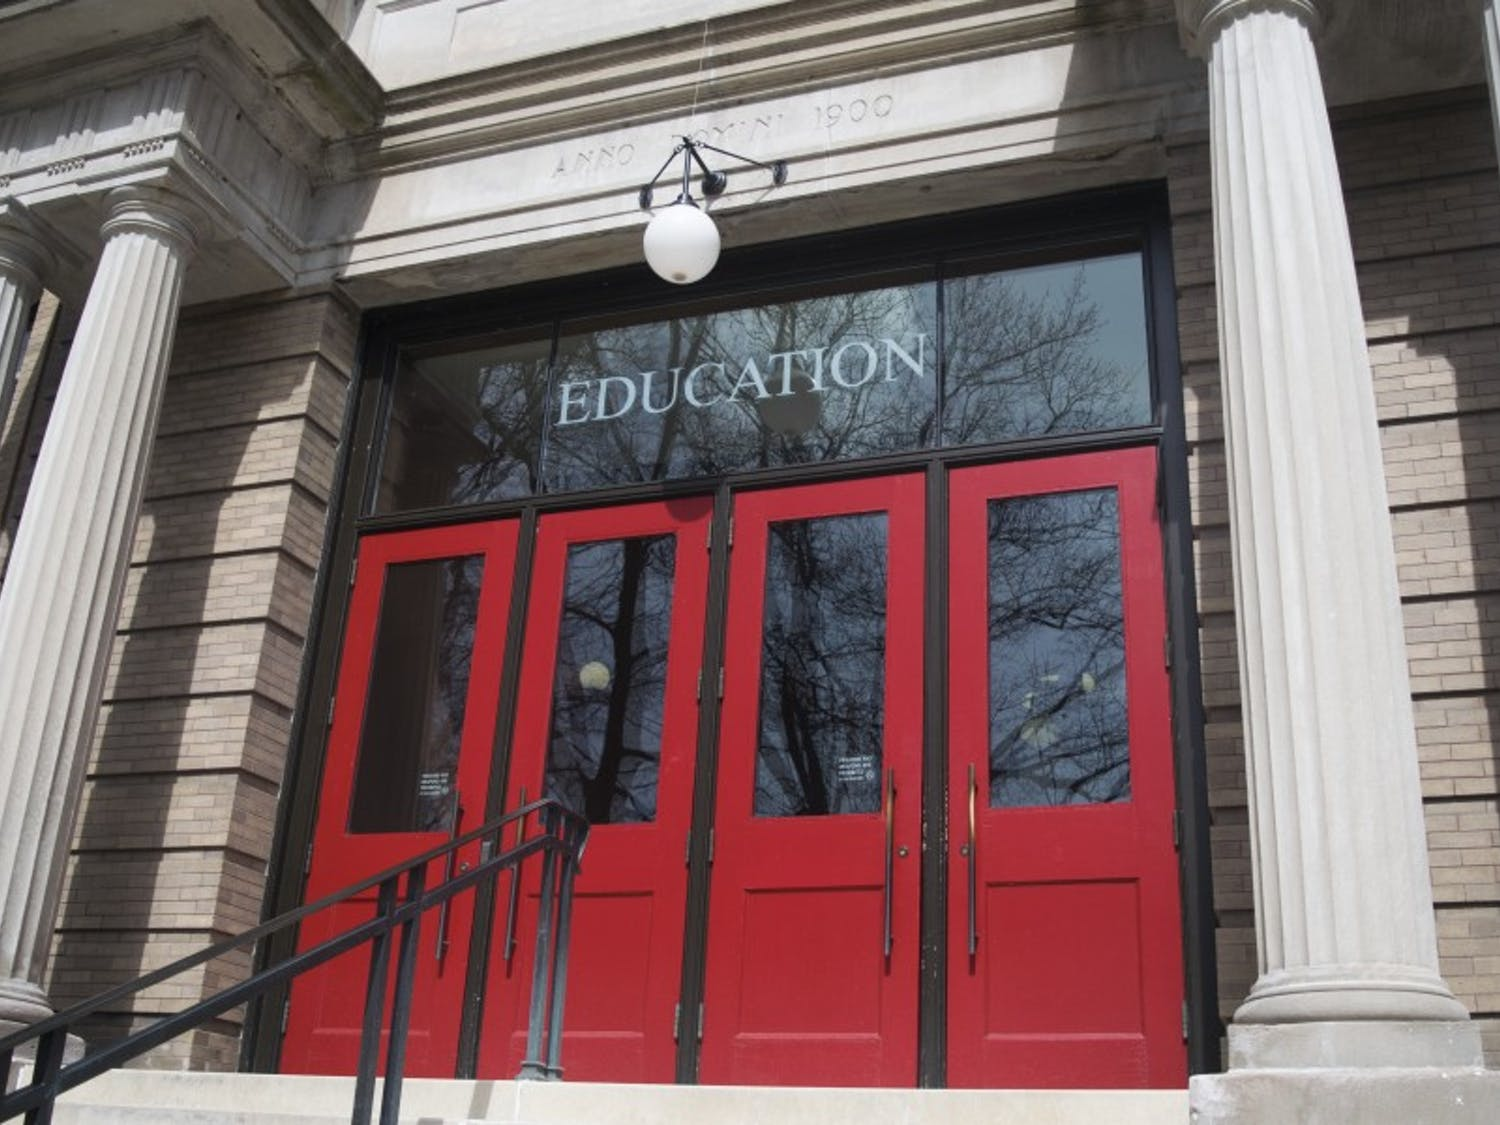 The Center for Research on Early Childhood Education was founded by Beth Graue, the Sorenson professor in the Department of Curriculum and Instruction at UW-Madison's School of Education, and Amy Claessens, Gulbrandsen Distinguished Chair in Early Childhood Education.